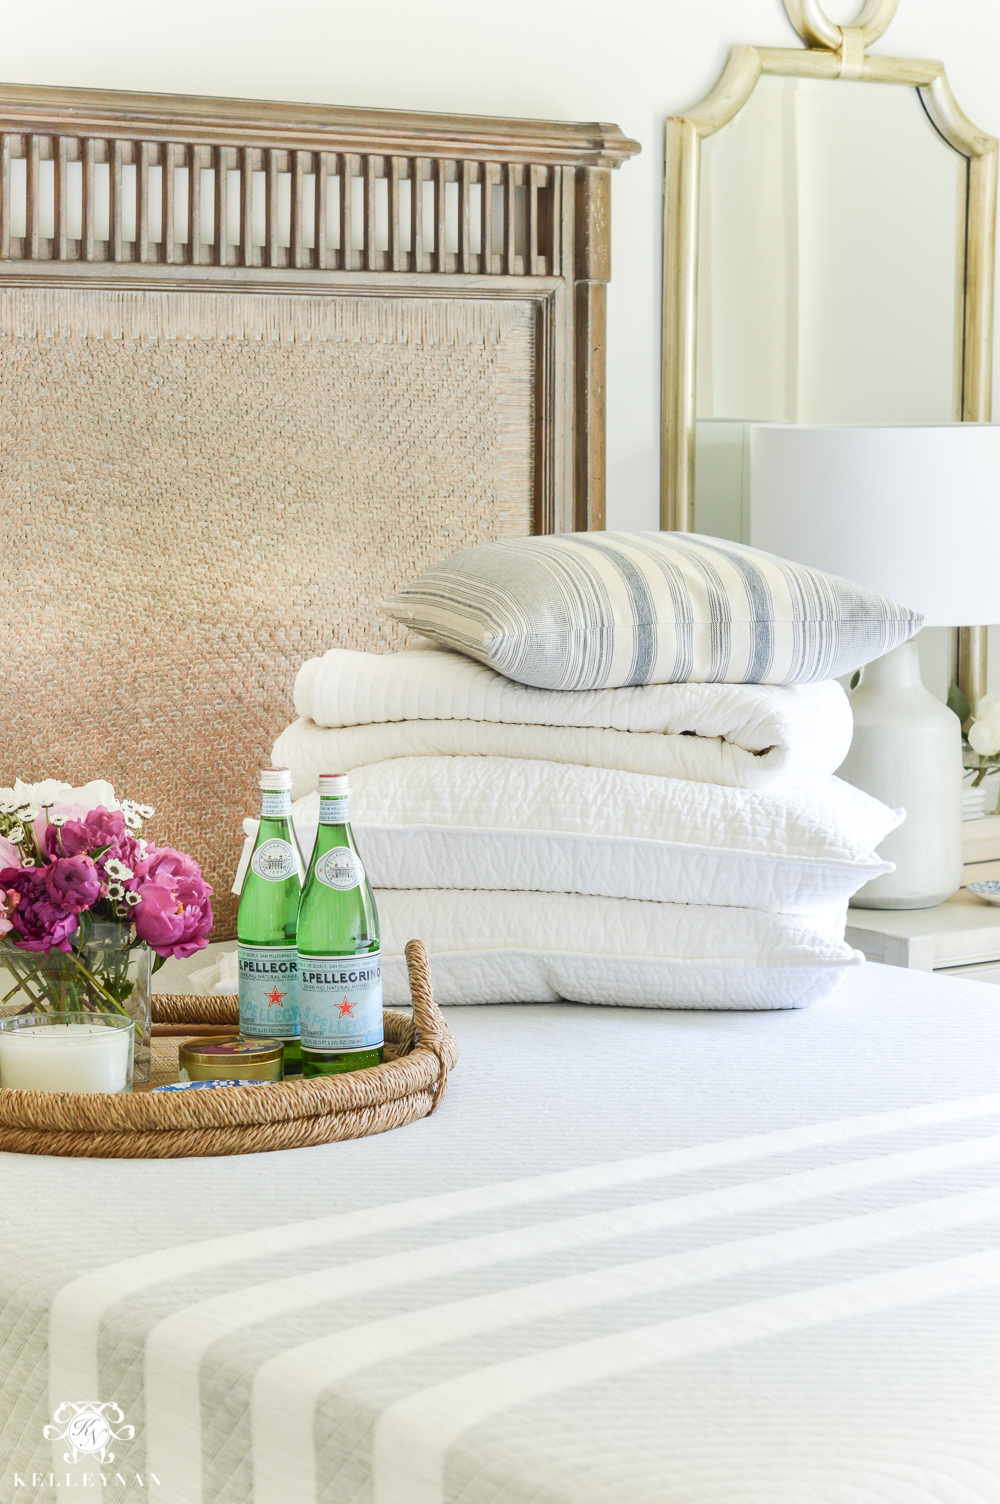 8 Guest Bedroom Essentials and Luxuries Your Company Will Thank ...